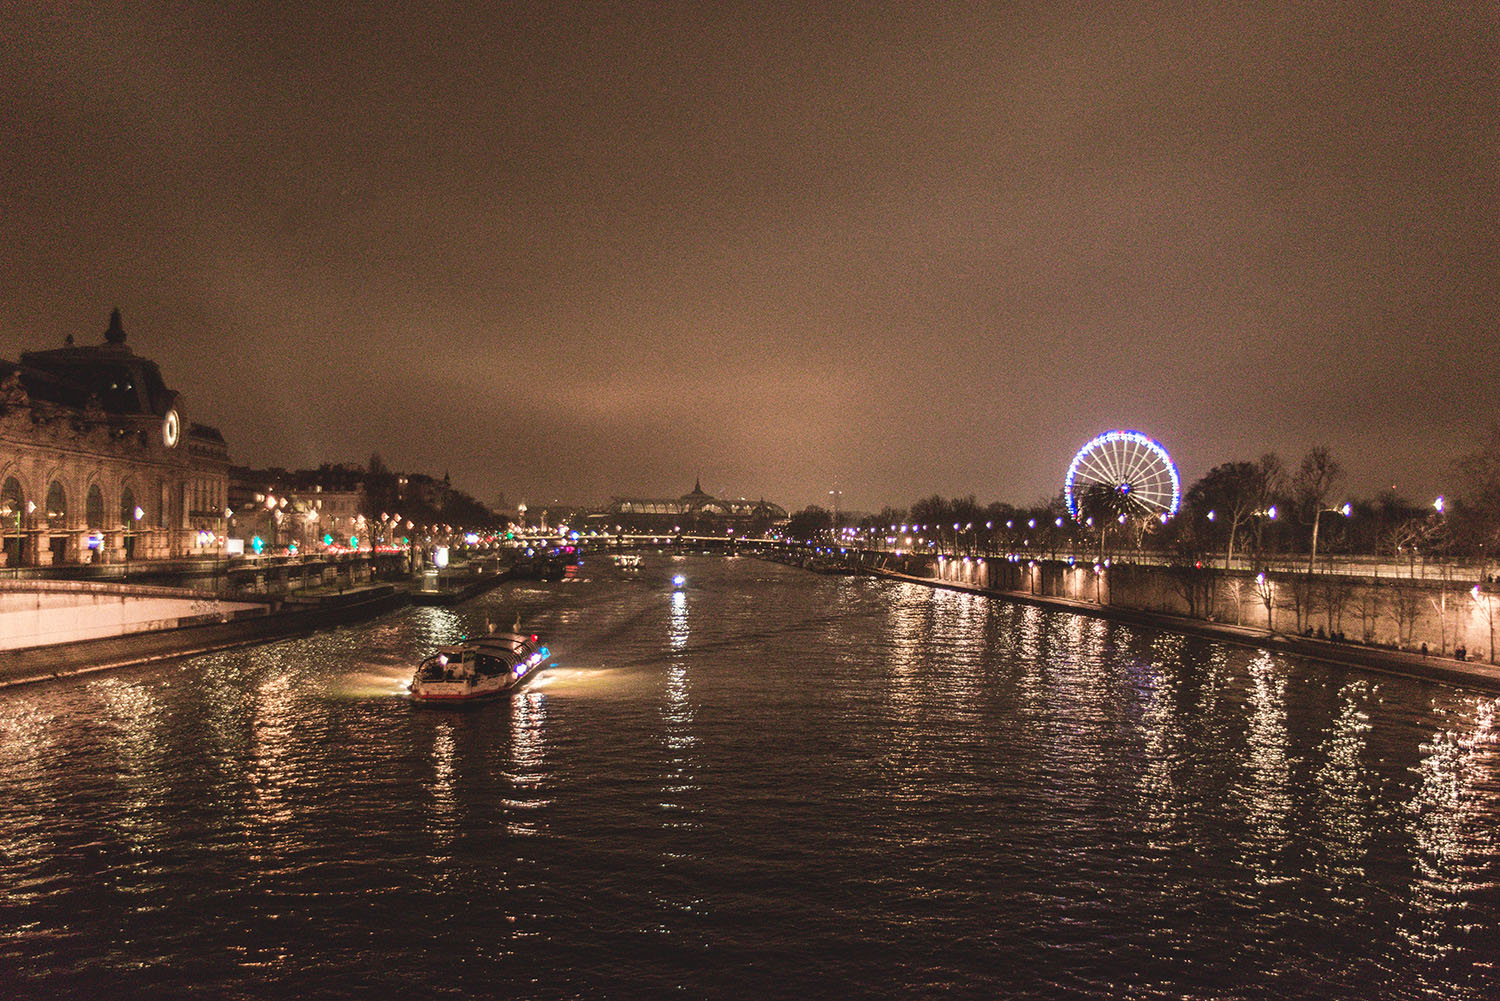 Paris by night. View from Pont Royal Bridge